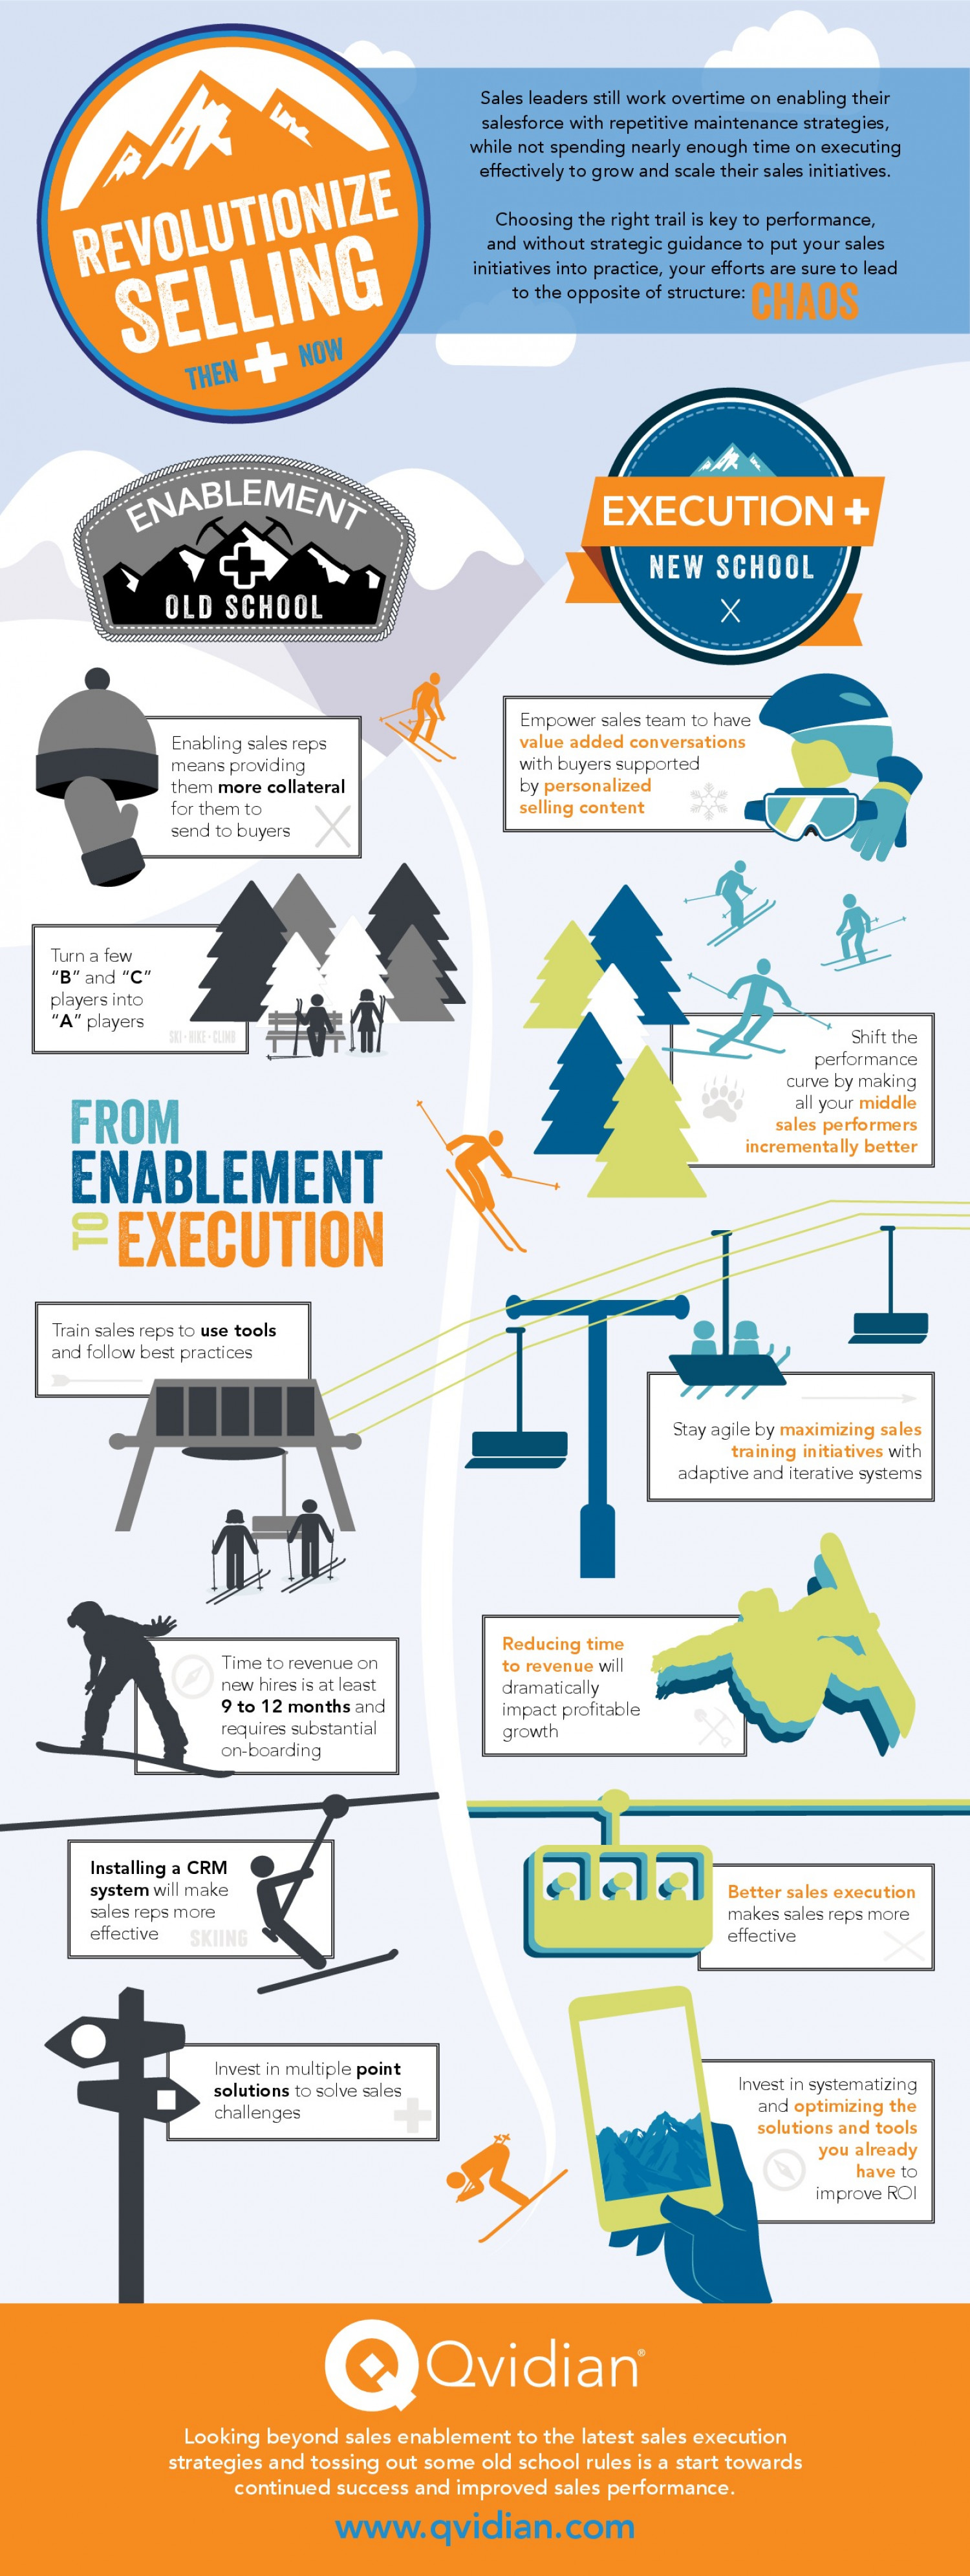 Revolutionize Selling: Then & Now Infographic